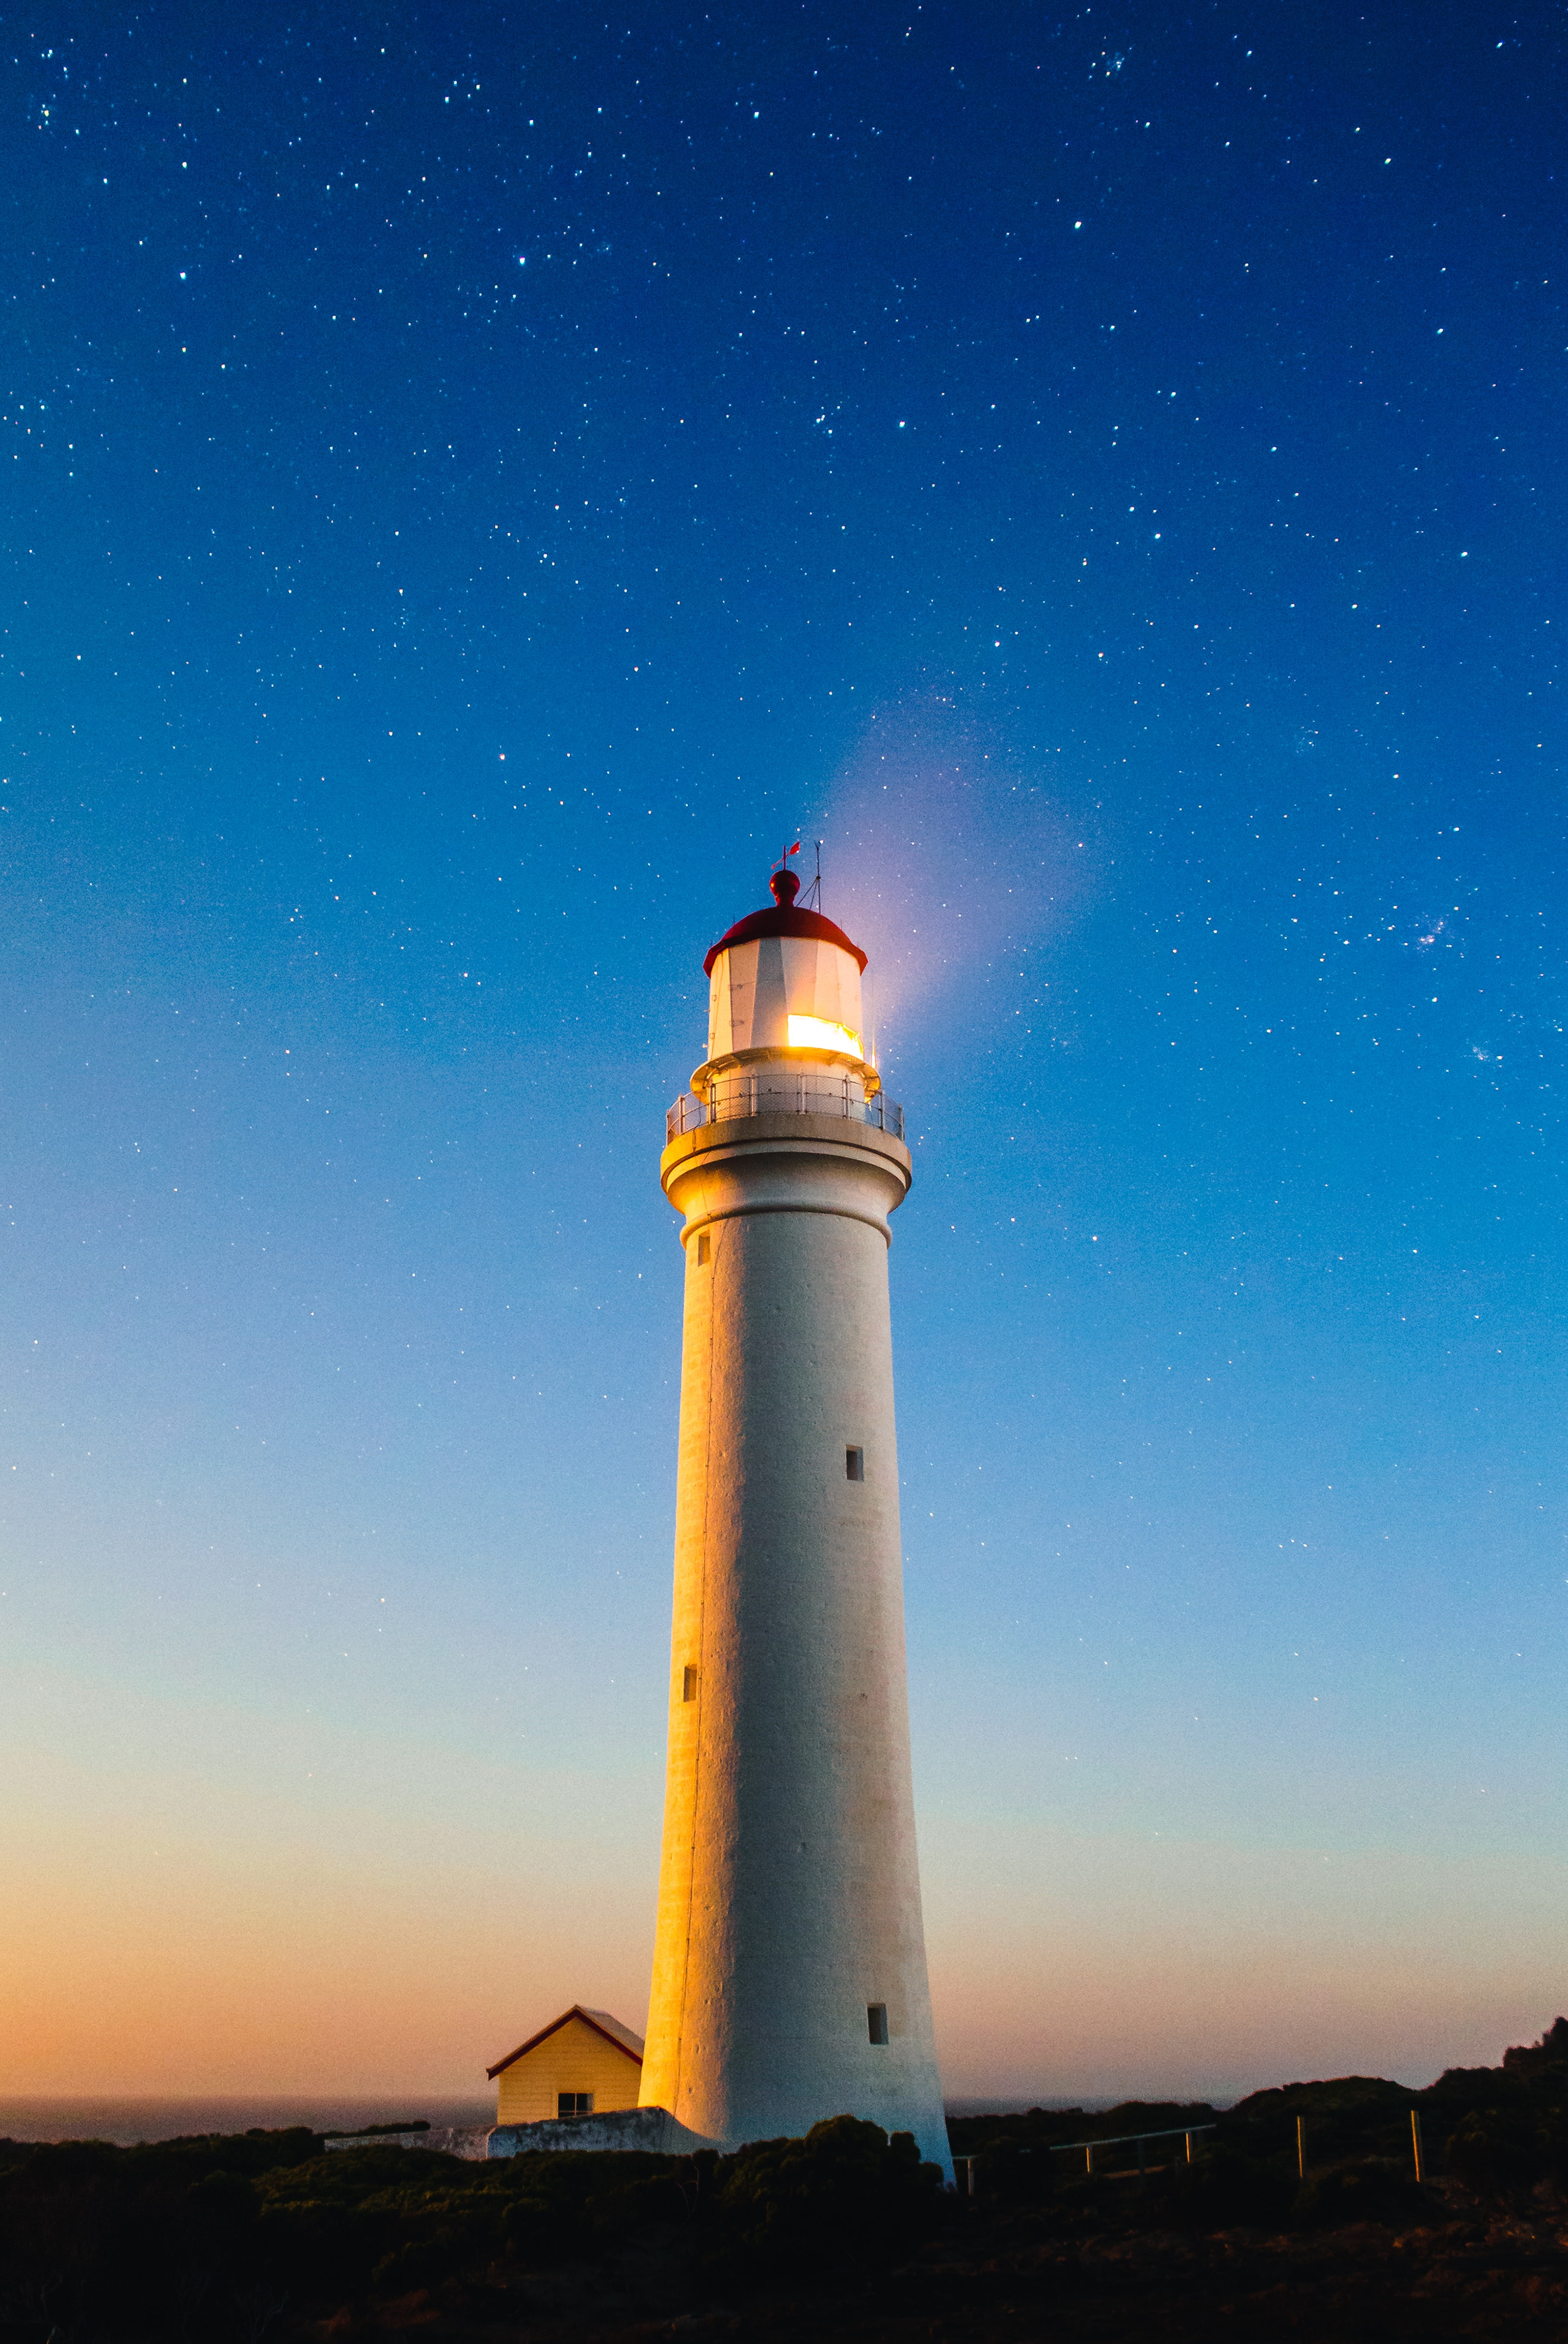 High Quality Light House, Lighthouse, Wallpaper And Iphone Wallpapers HD Photo By Joshua  Hibbert (@joshnh) On Unsplash